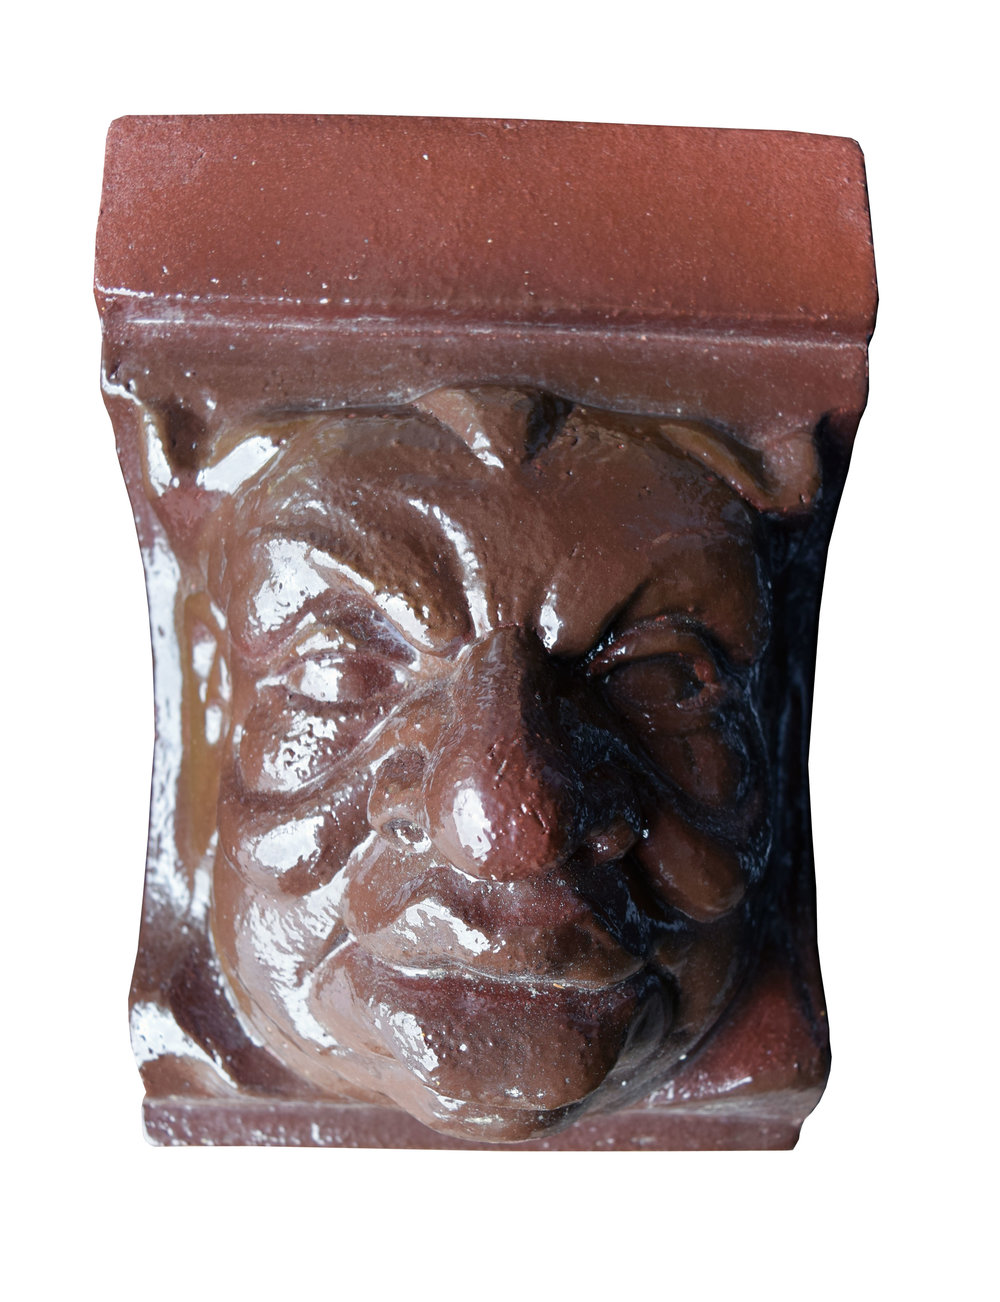 47239-glazed-terra-cotta-faces-mad.jpg